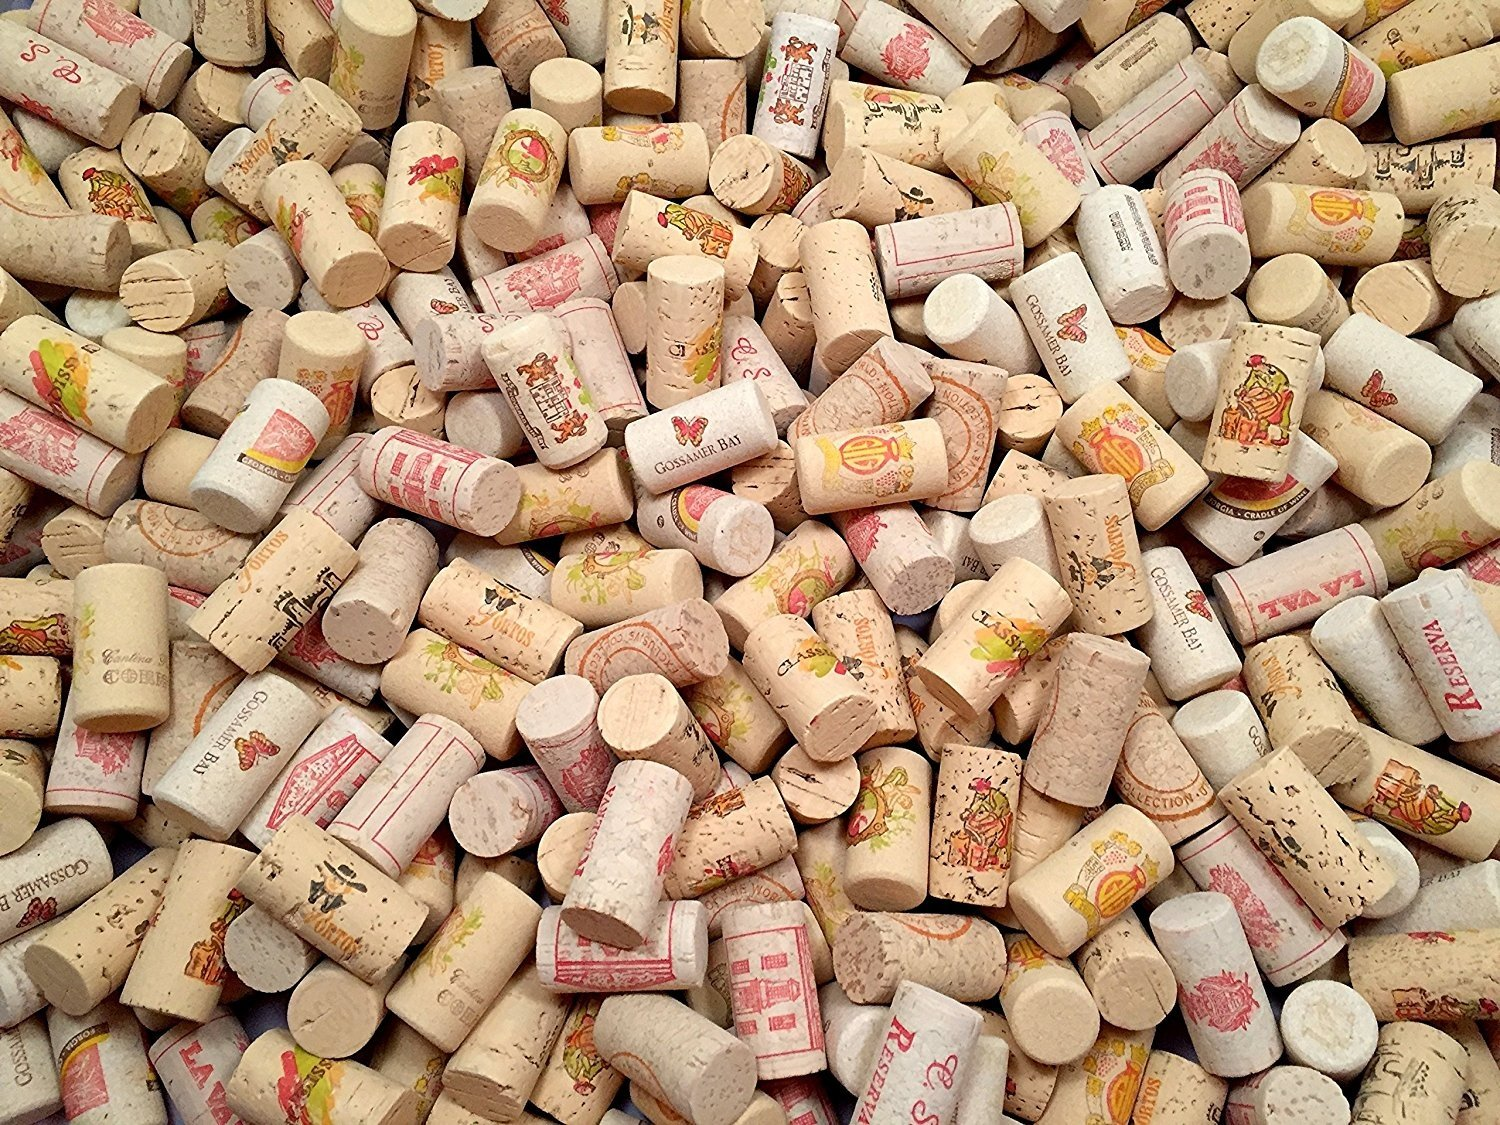 COLOR Wine Corks | Brand New, Authentic, All Natural | Printed, Winery-Marked, Craft Grade | Uncirculated, Uniform & Clean | Excellent for Crafting & Decor | Pack of 25/50/100 Premium Wine Cork (50) by Omni Trading Worldwide (Image #1)